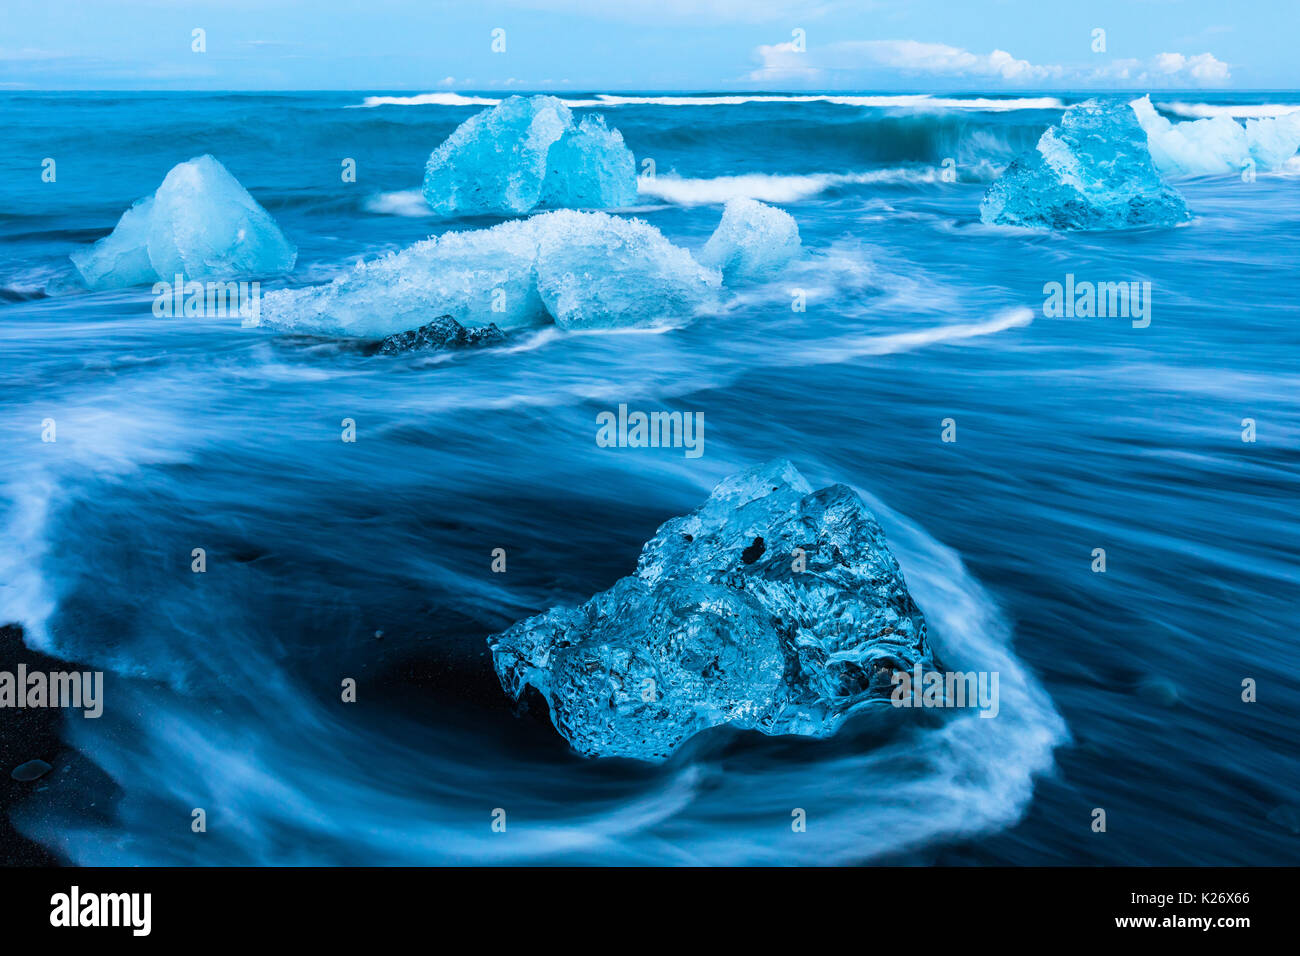 Jökulsárlón is a large glacial lake in southeast Iceland, on the edge of Vatnajökull National Park. Situated at the head of the Breiðamerkurjökull gla - Stock Image